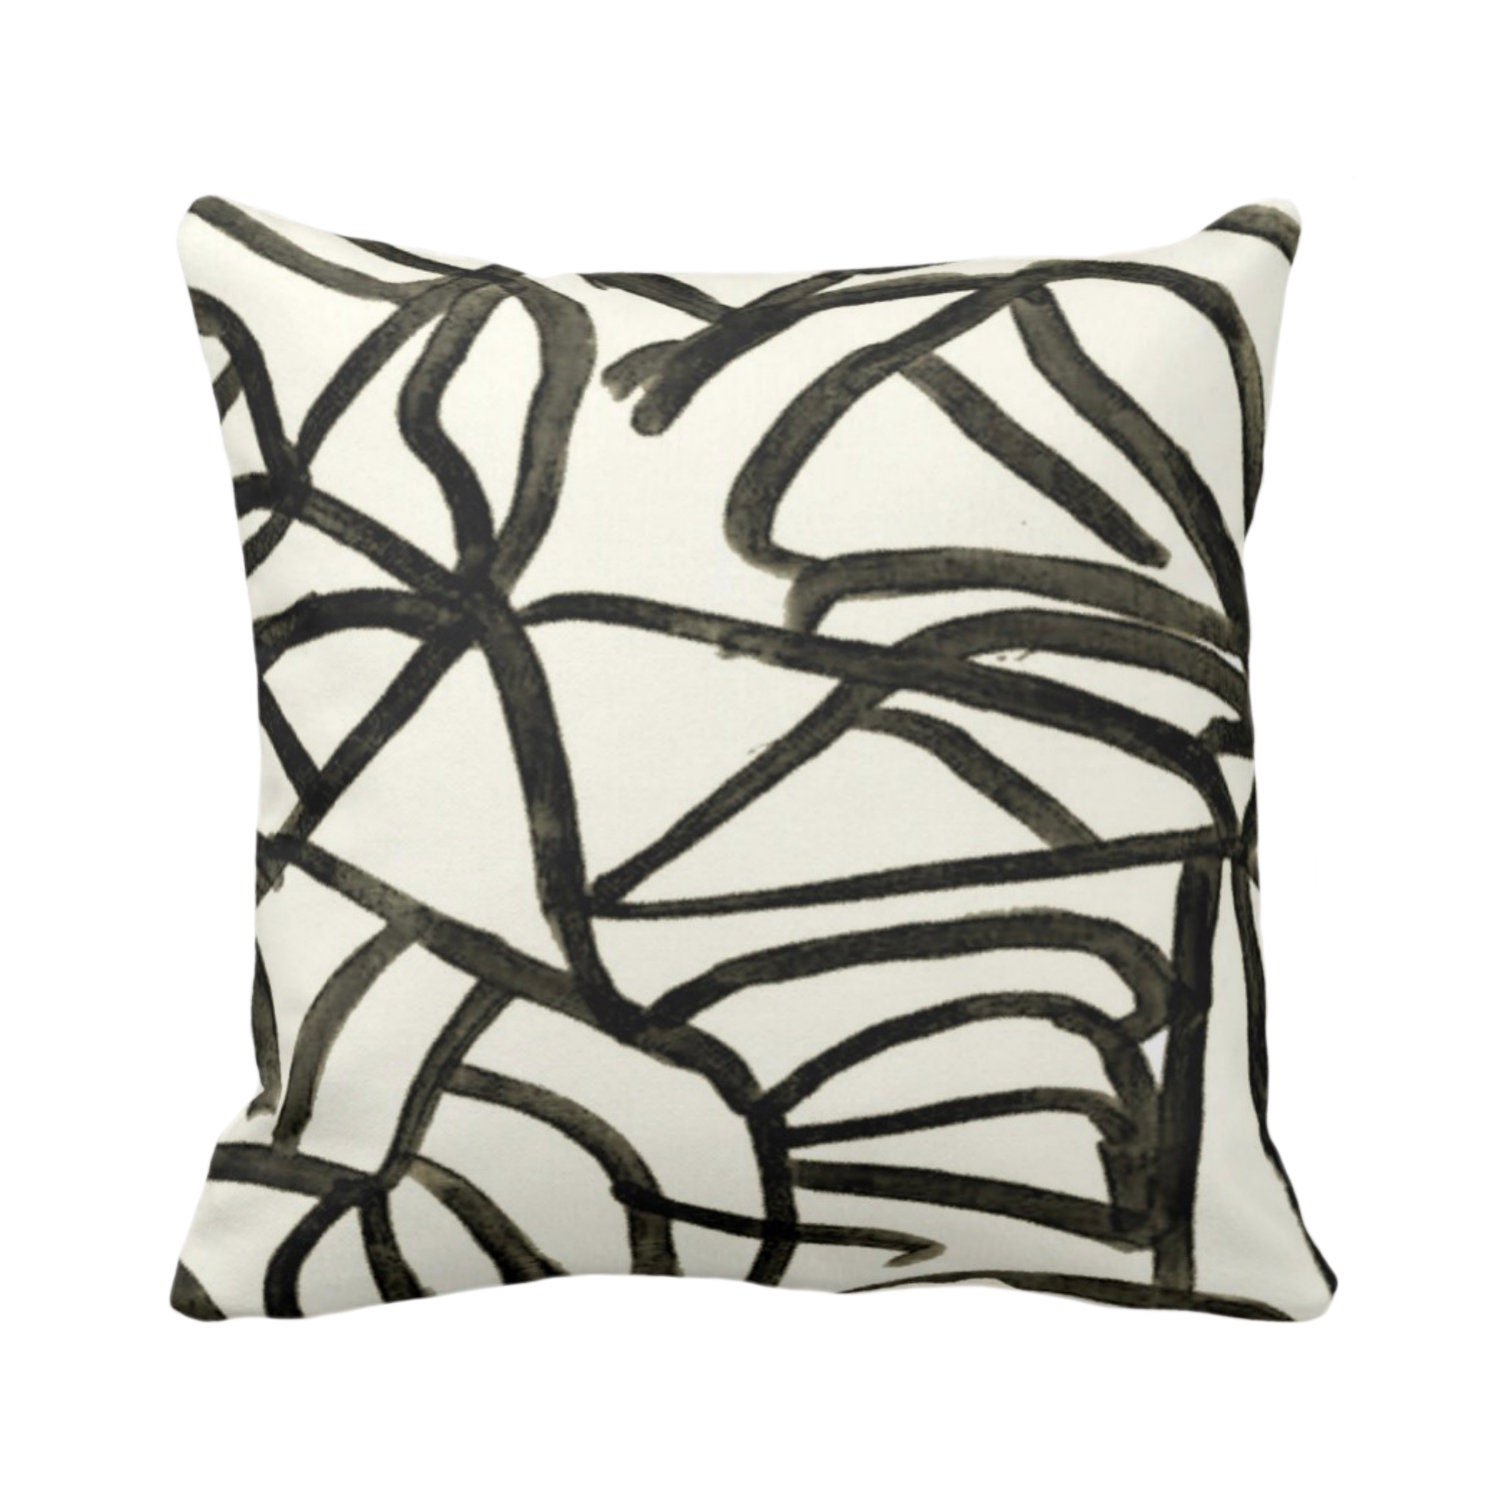 OUTDOOR Abstract Throw Pillow or Cover, Ivory/Charcoal 16, 18, 20 Sq